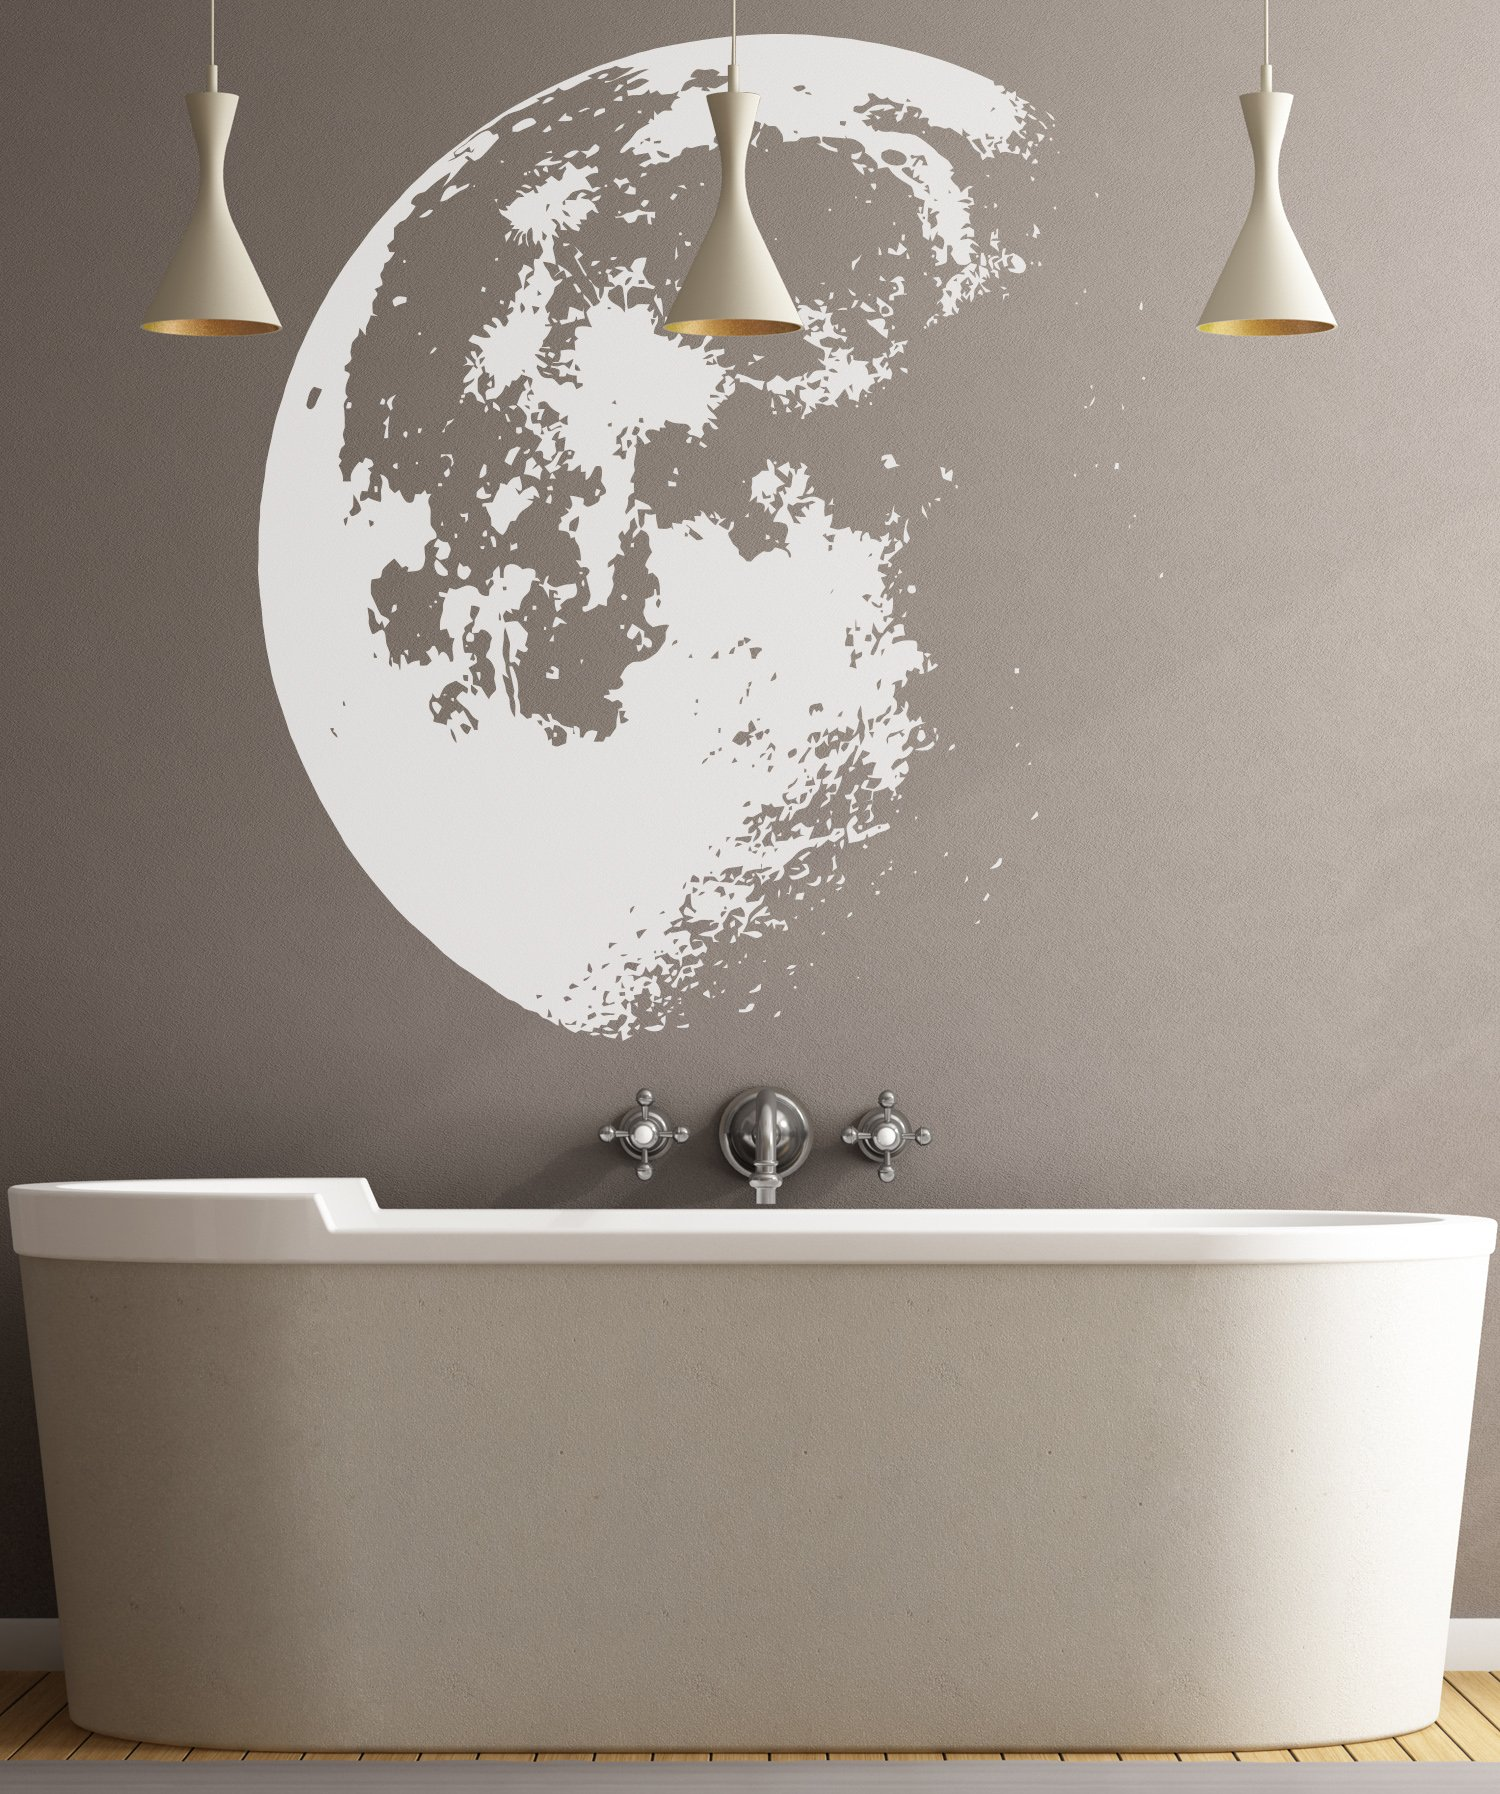 Large Crescent Moon Wall Decal Sticker by Stickerbrand - White color, Large 53in x 48in. #523A Easy to Apply & Removable.